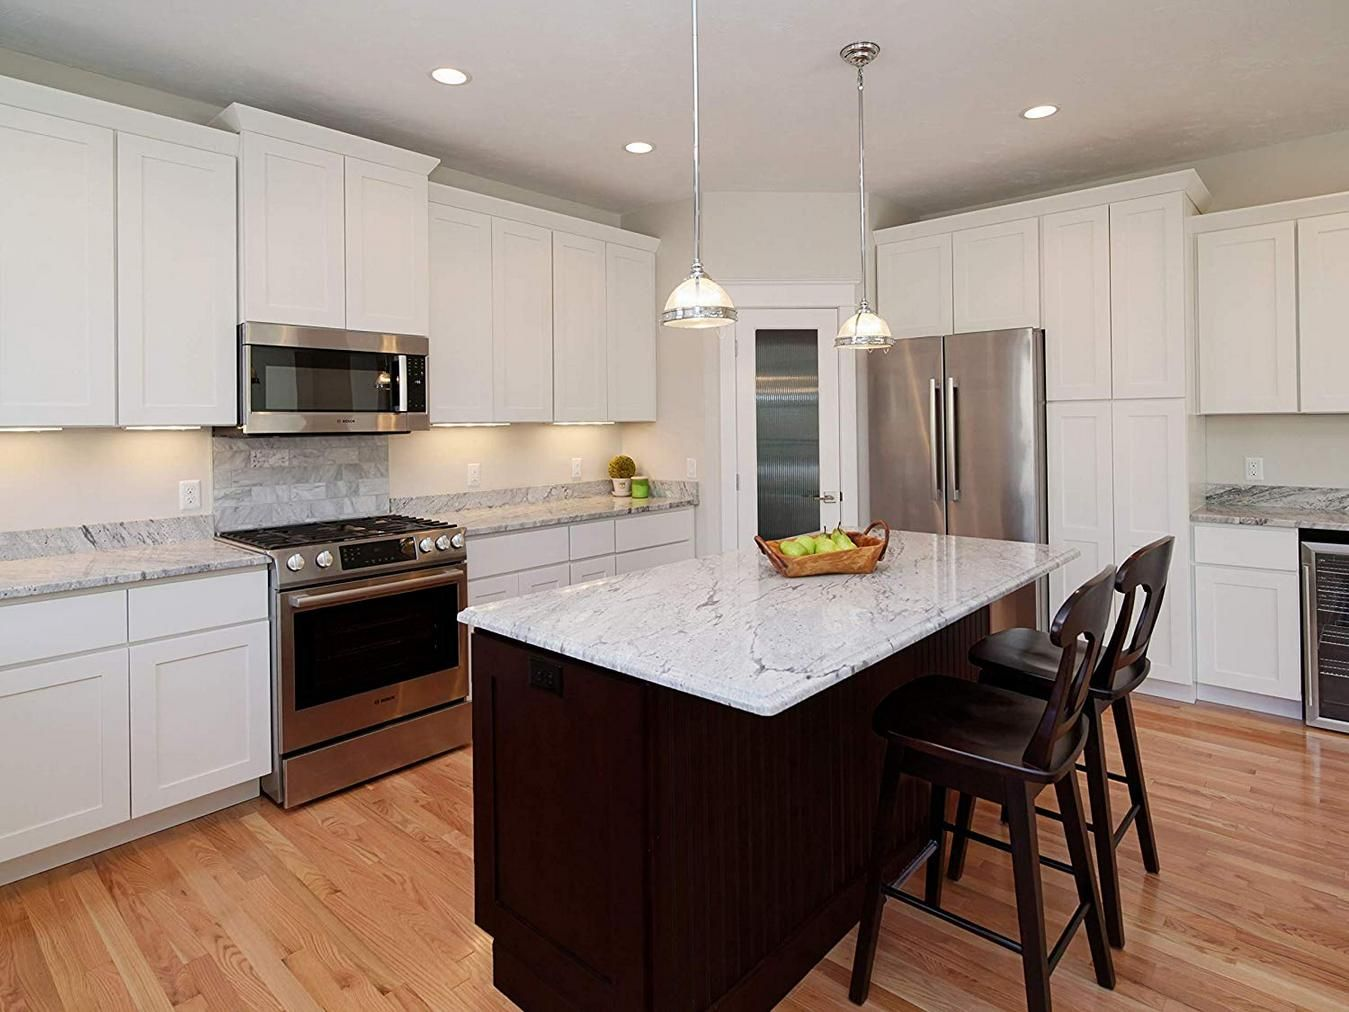 37 The Kitchen Cabinets White Shaker Collection Game In 2020 Order Kitchen Cabinets Shaker Kitchen Cabinets Assembled Kitchen Cabinets